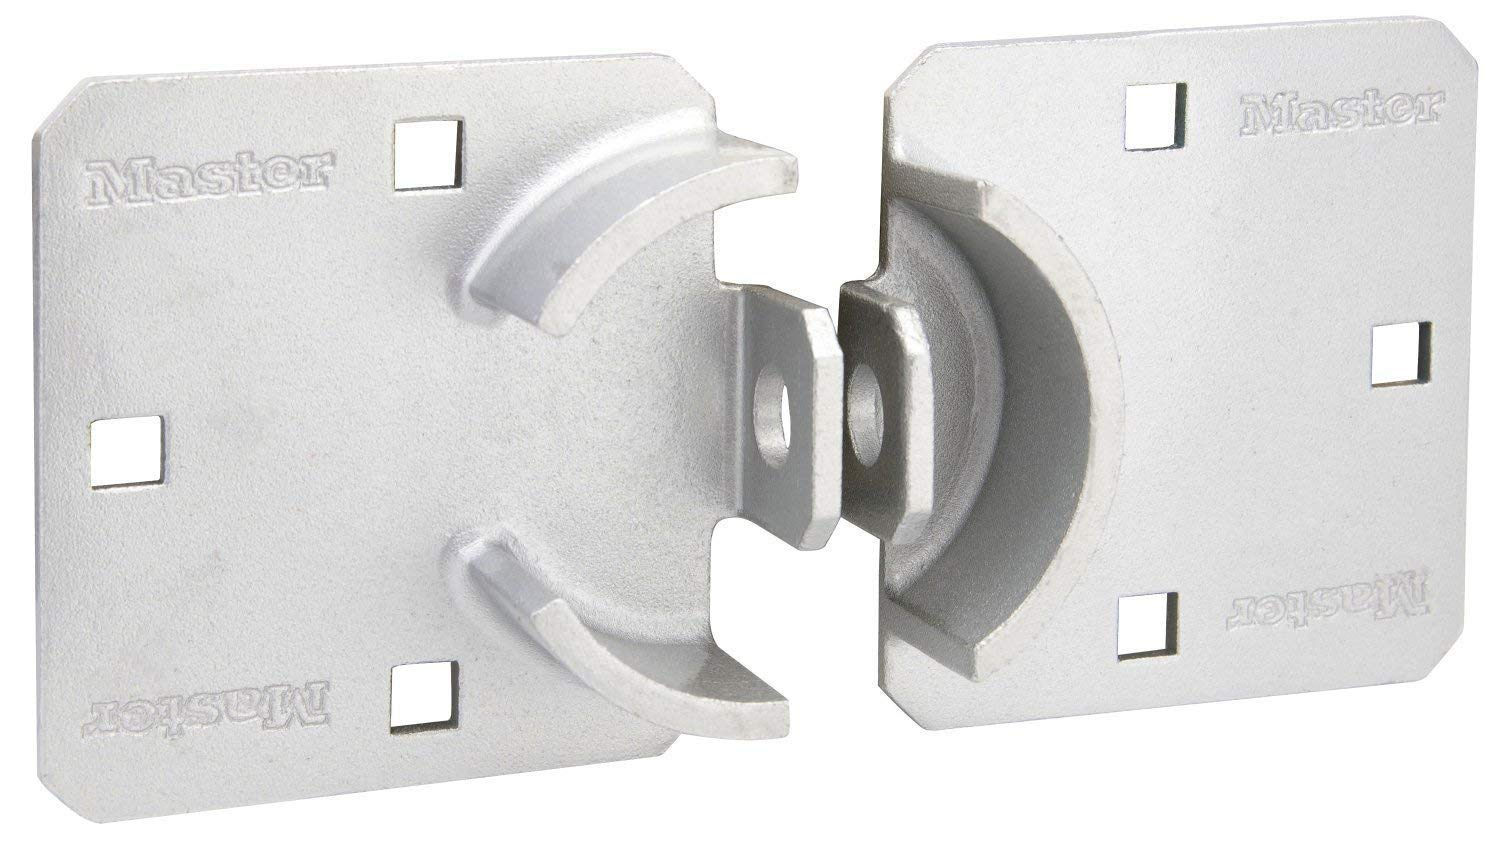 Master Lock Hasp, Solid Steel Hidden Hasp, 9 in. Wide, 770 (Pack of 4) by Master Lock (Image #2)